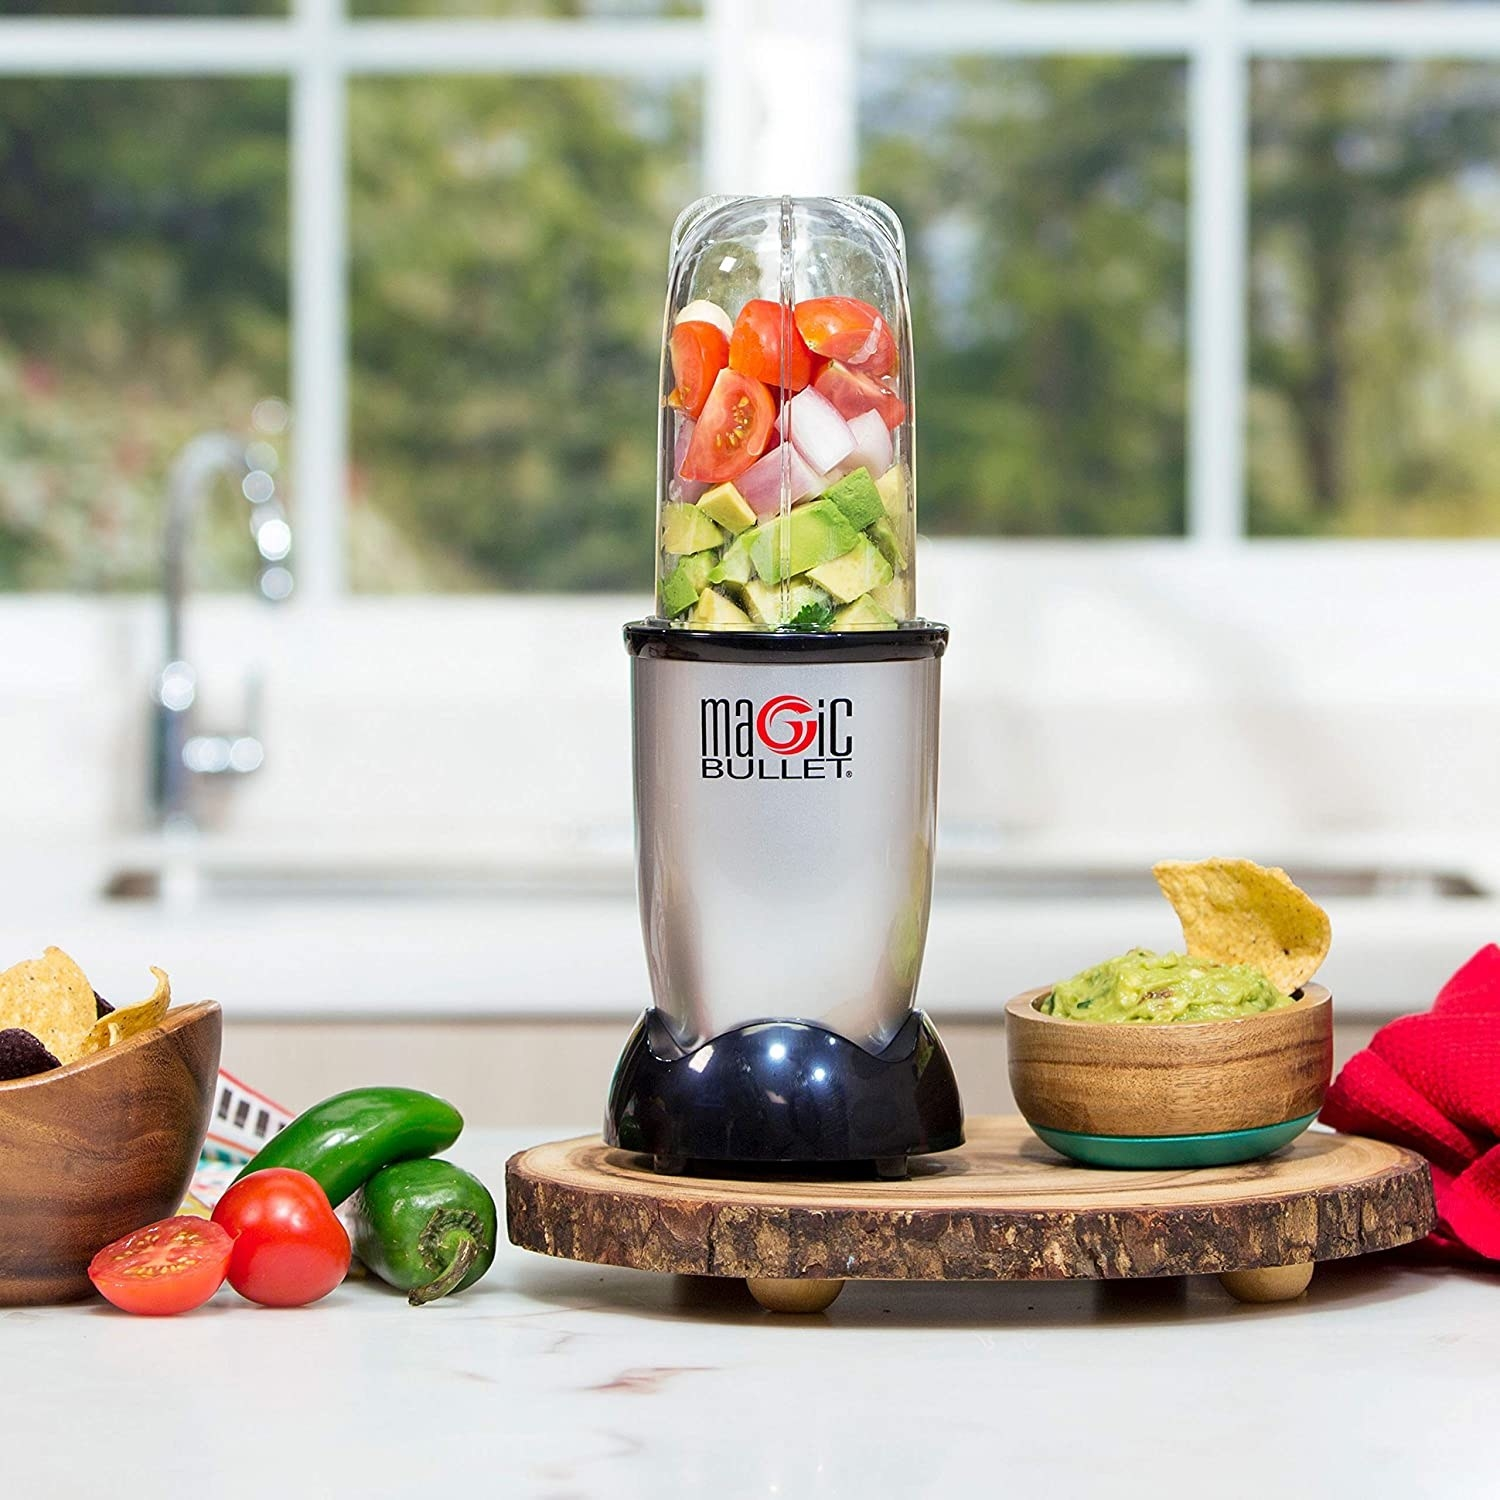 The blender with fruits and veggies inside